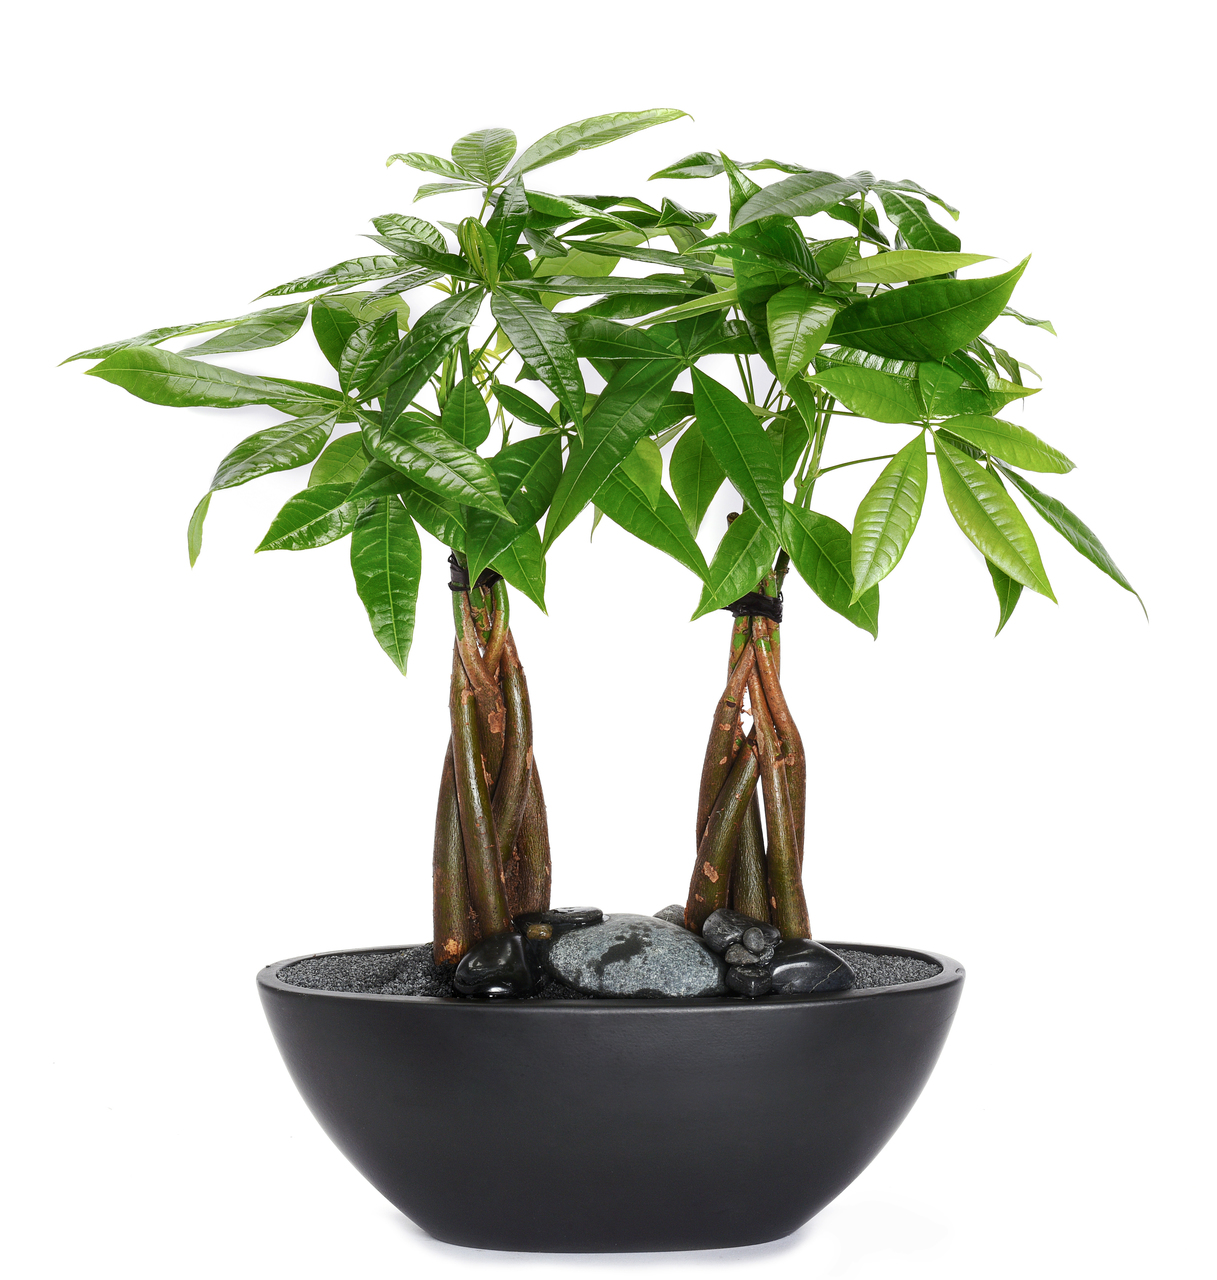 "Germany Boat Small Black - Double Money Tree (12"" H x 11.75"" W)"